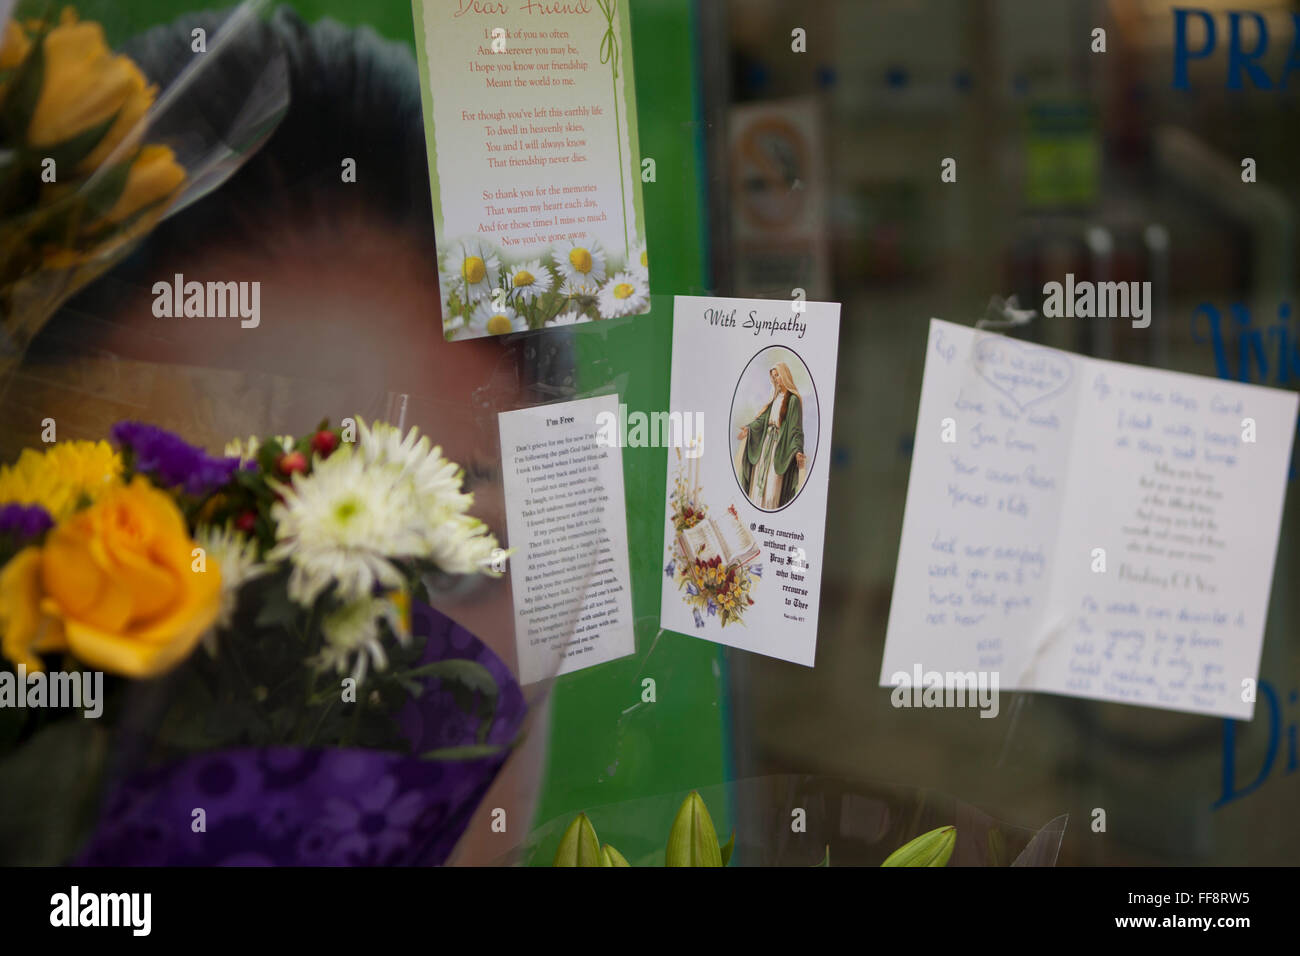 Donegall Place, Belfast, 11th February 2016. A sympathy Card and Flowers left at the  spot where Homeless Belfast - Stock Image